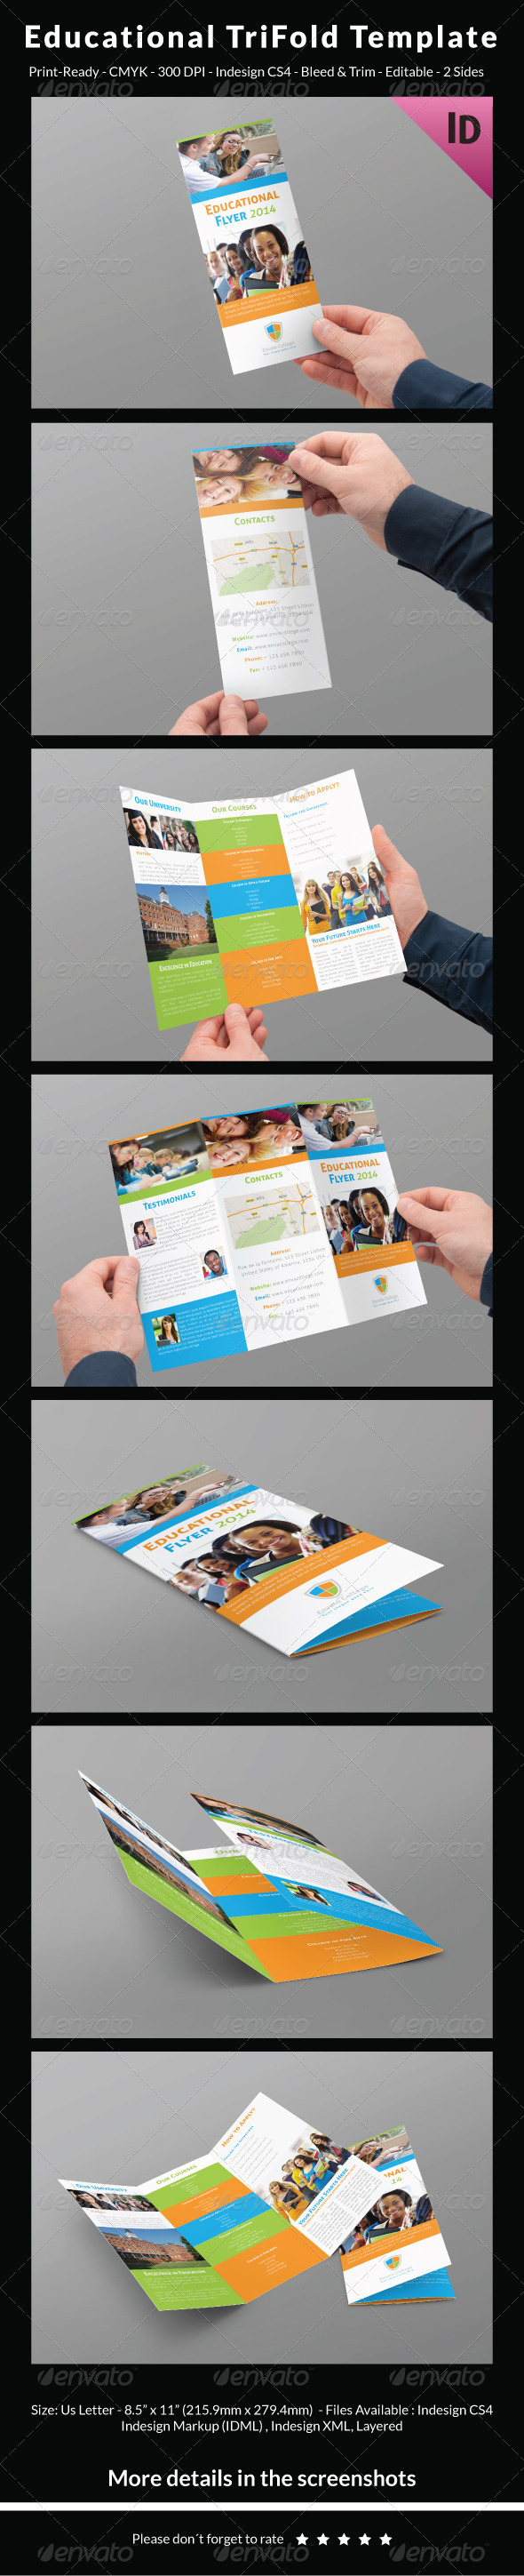 Educational Trifold Template - Corporate Flyers